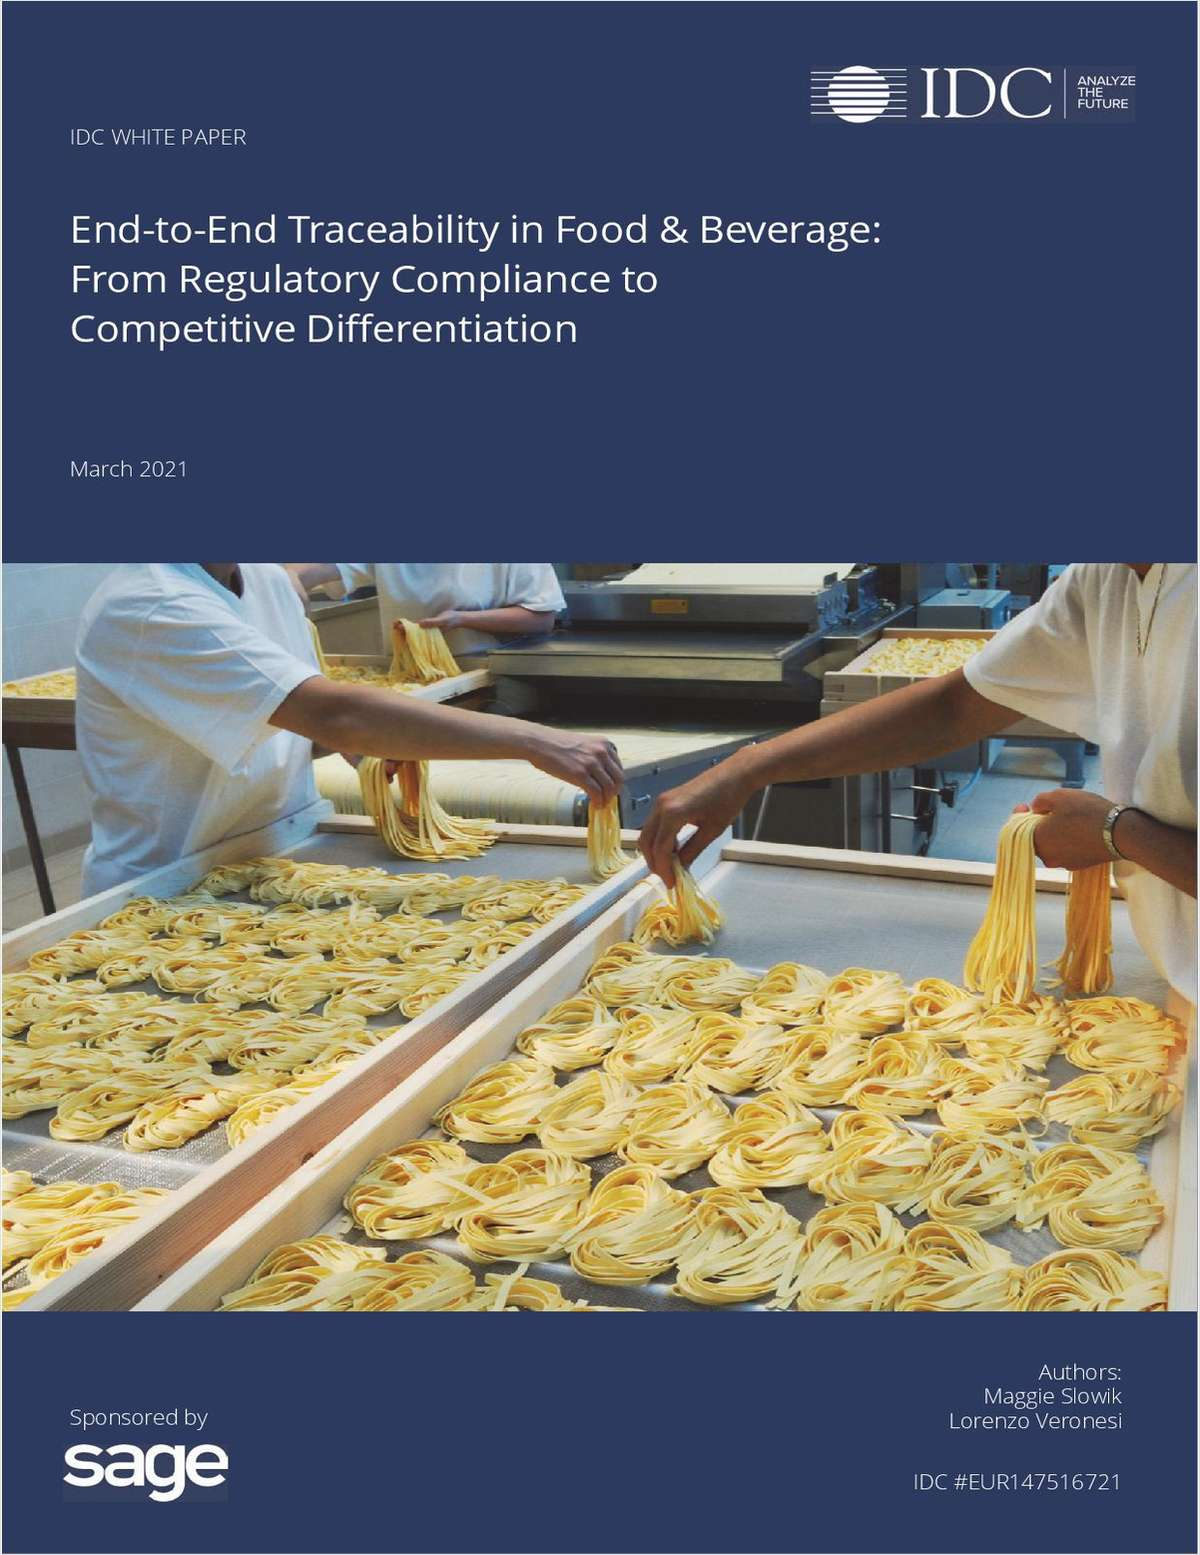 Regulatory Compliance to Competitive Differentiation for Food and Beverage Manufacturing